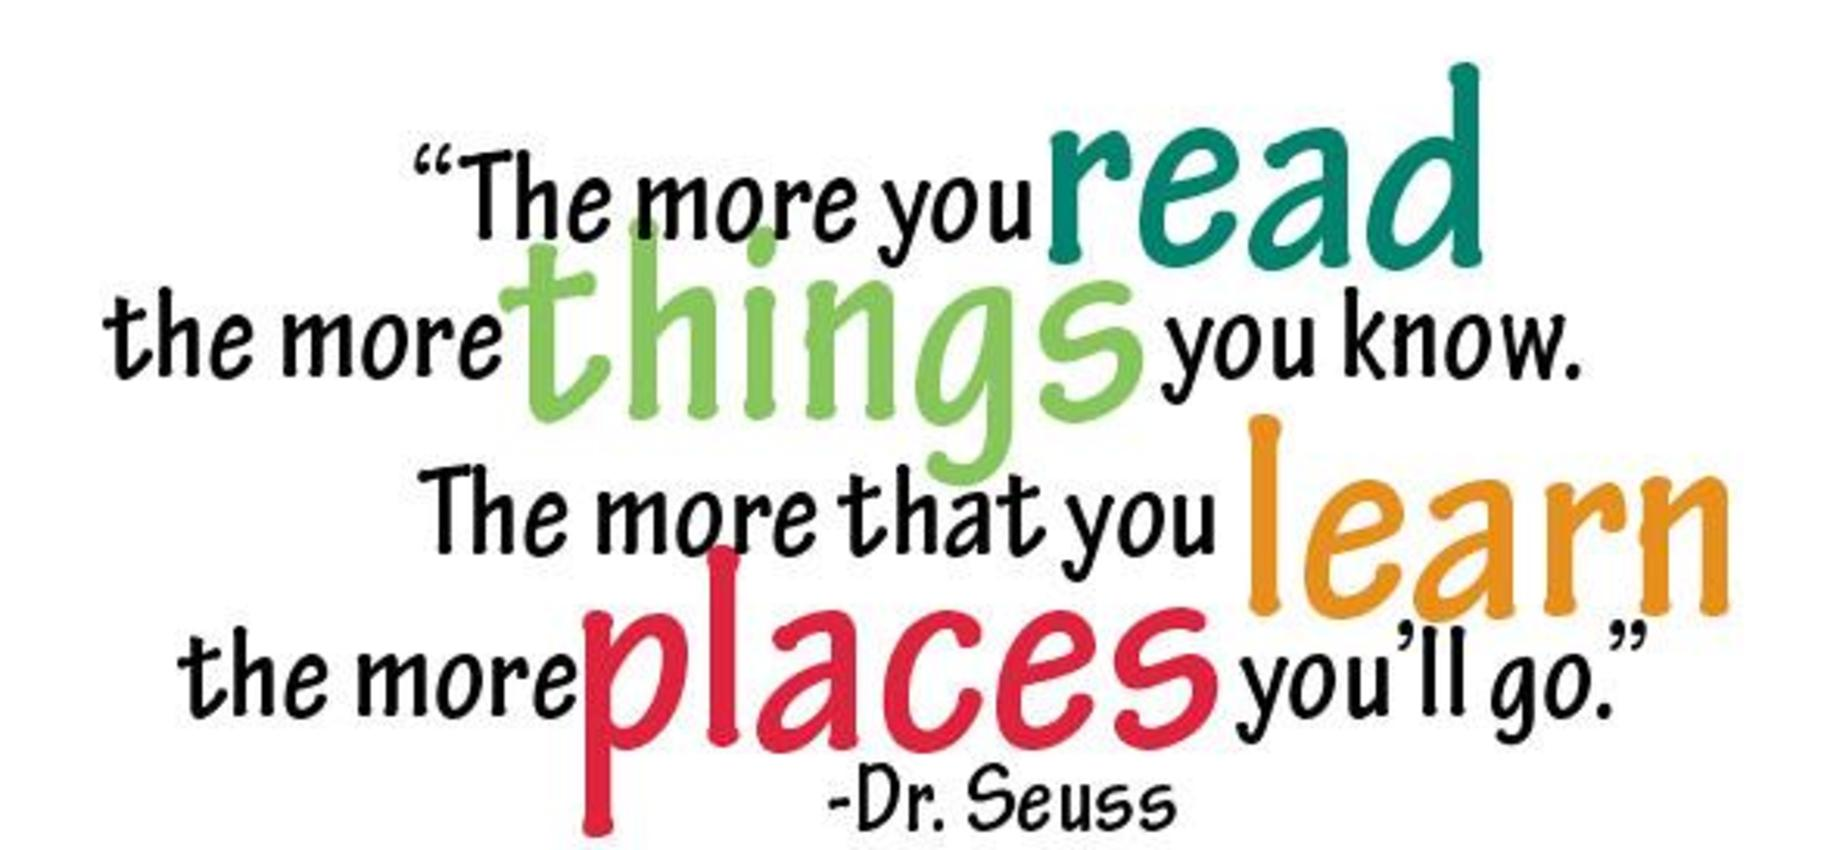 The more you read the more things you know.  The more that you learn the more places you'll go.